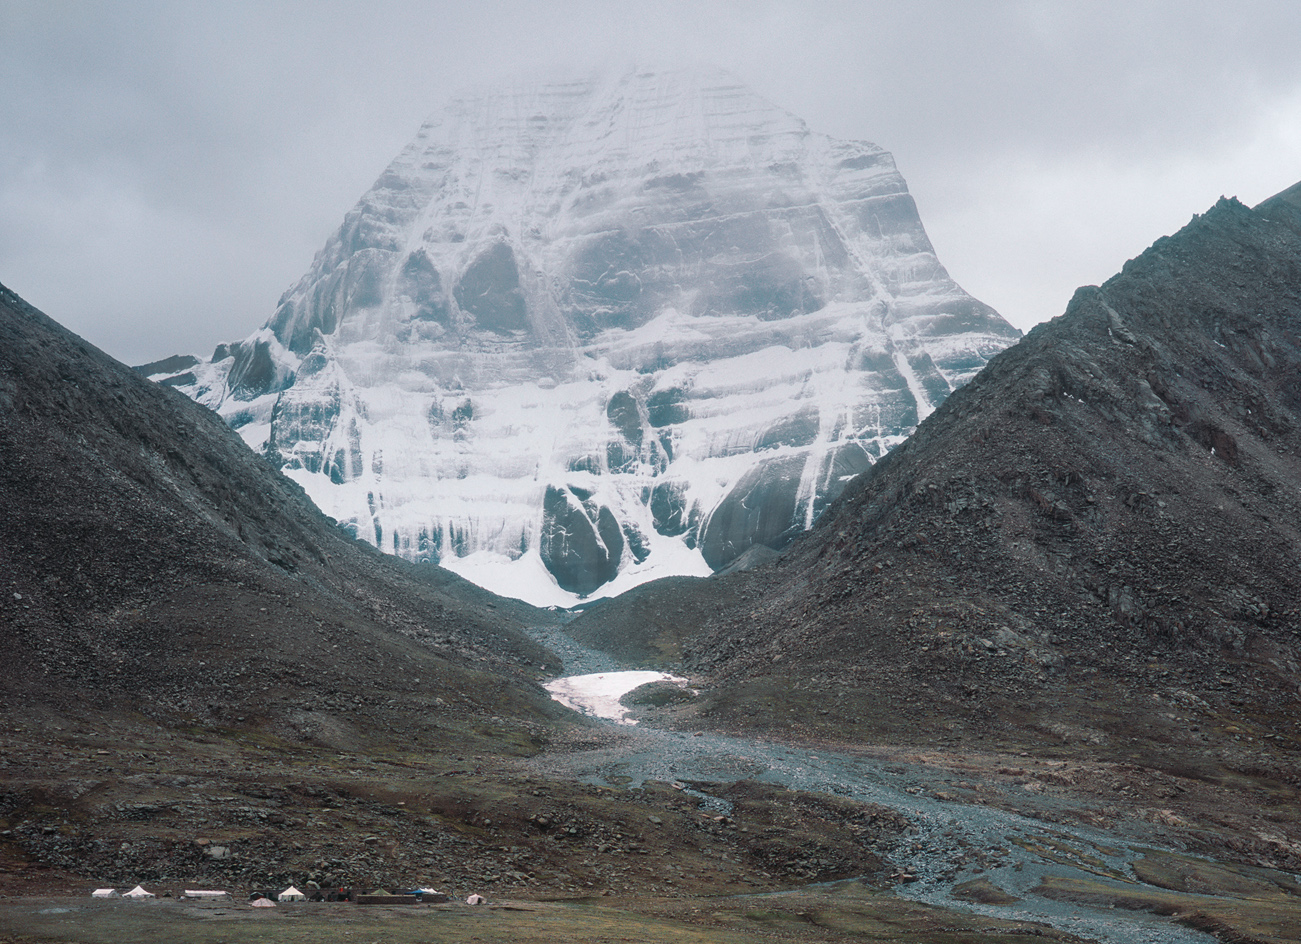 An afternoon snowstorm partialy obscures the holy mountain, as seen from Drira Puk Gompa. Fuji GW690, Fuji Pro 160NS